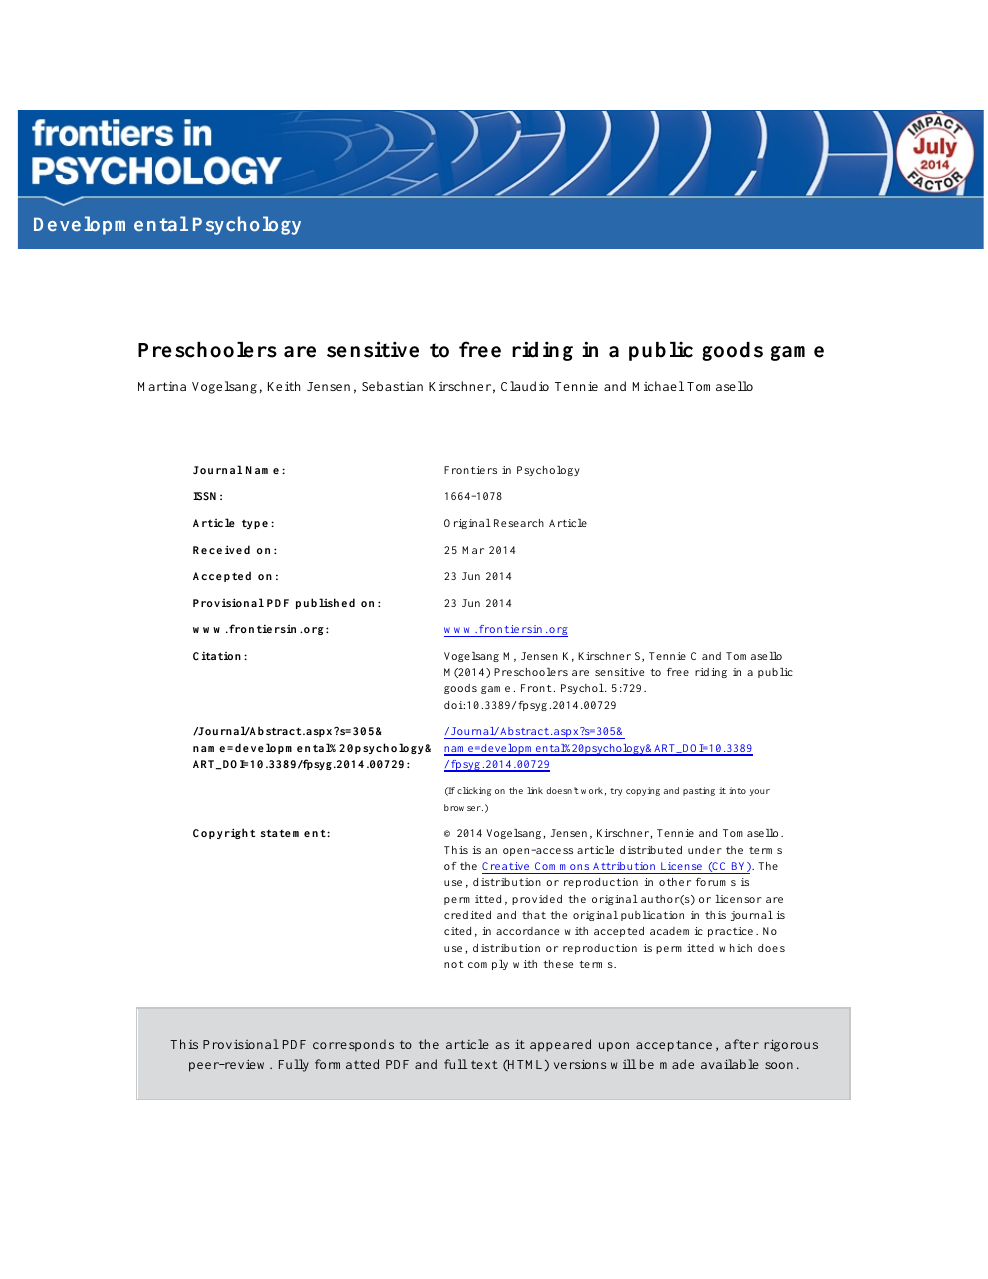 Preschoolers Are Sensitive To Free Riding In A Public Goods Game Topic Of Research Paper In Psychology Download Scholarly Article Pdf And Read For Free On Cyberleninka Open Science Hub